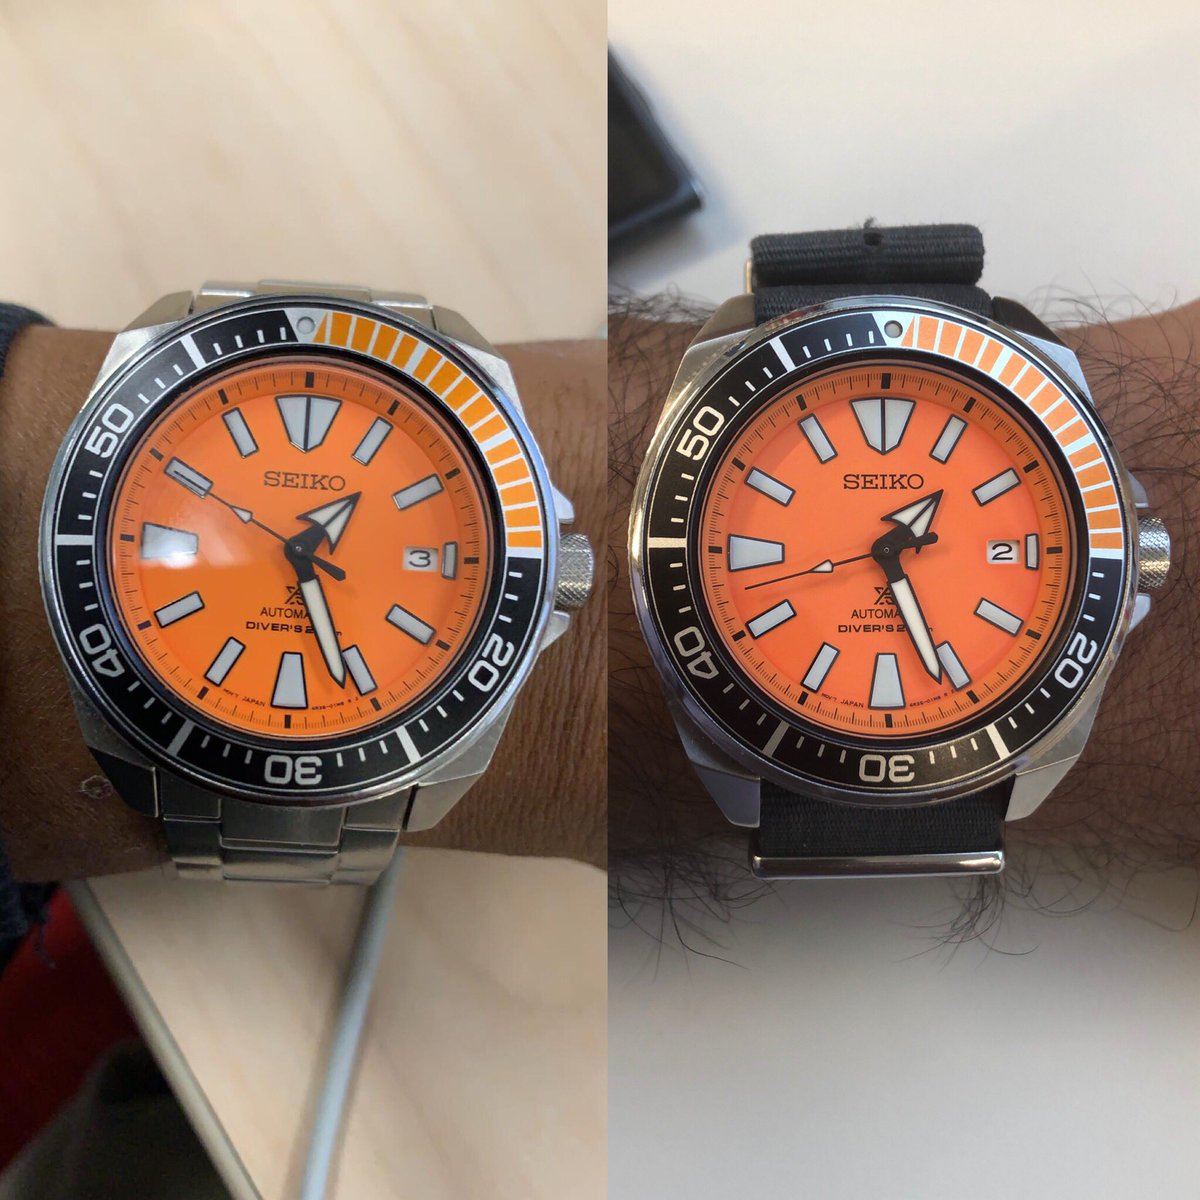 @sanjiv_l finally joins the Samurai clan... great to finally have the watch of the podcast on our wrists - even if it's a few hundred miles apart!  Check out his thoughts on the Seiko SPRC07 and other releases in Ep20  #Seiko #SeikoSamurai #SRPC07 #OrangeSamurai @seikowatches https://t.co/30oBtbxzsO